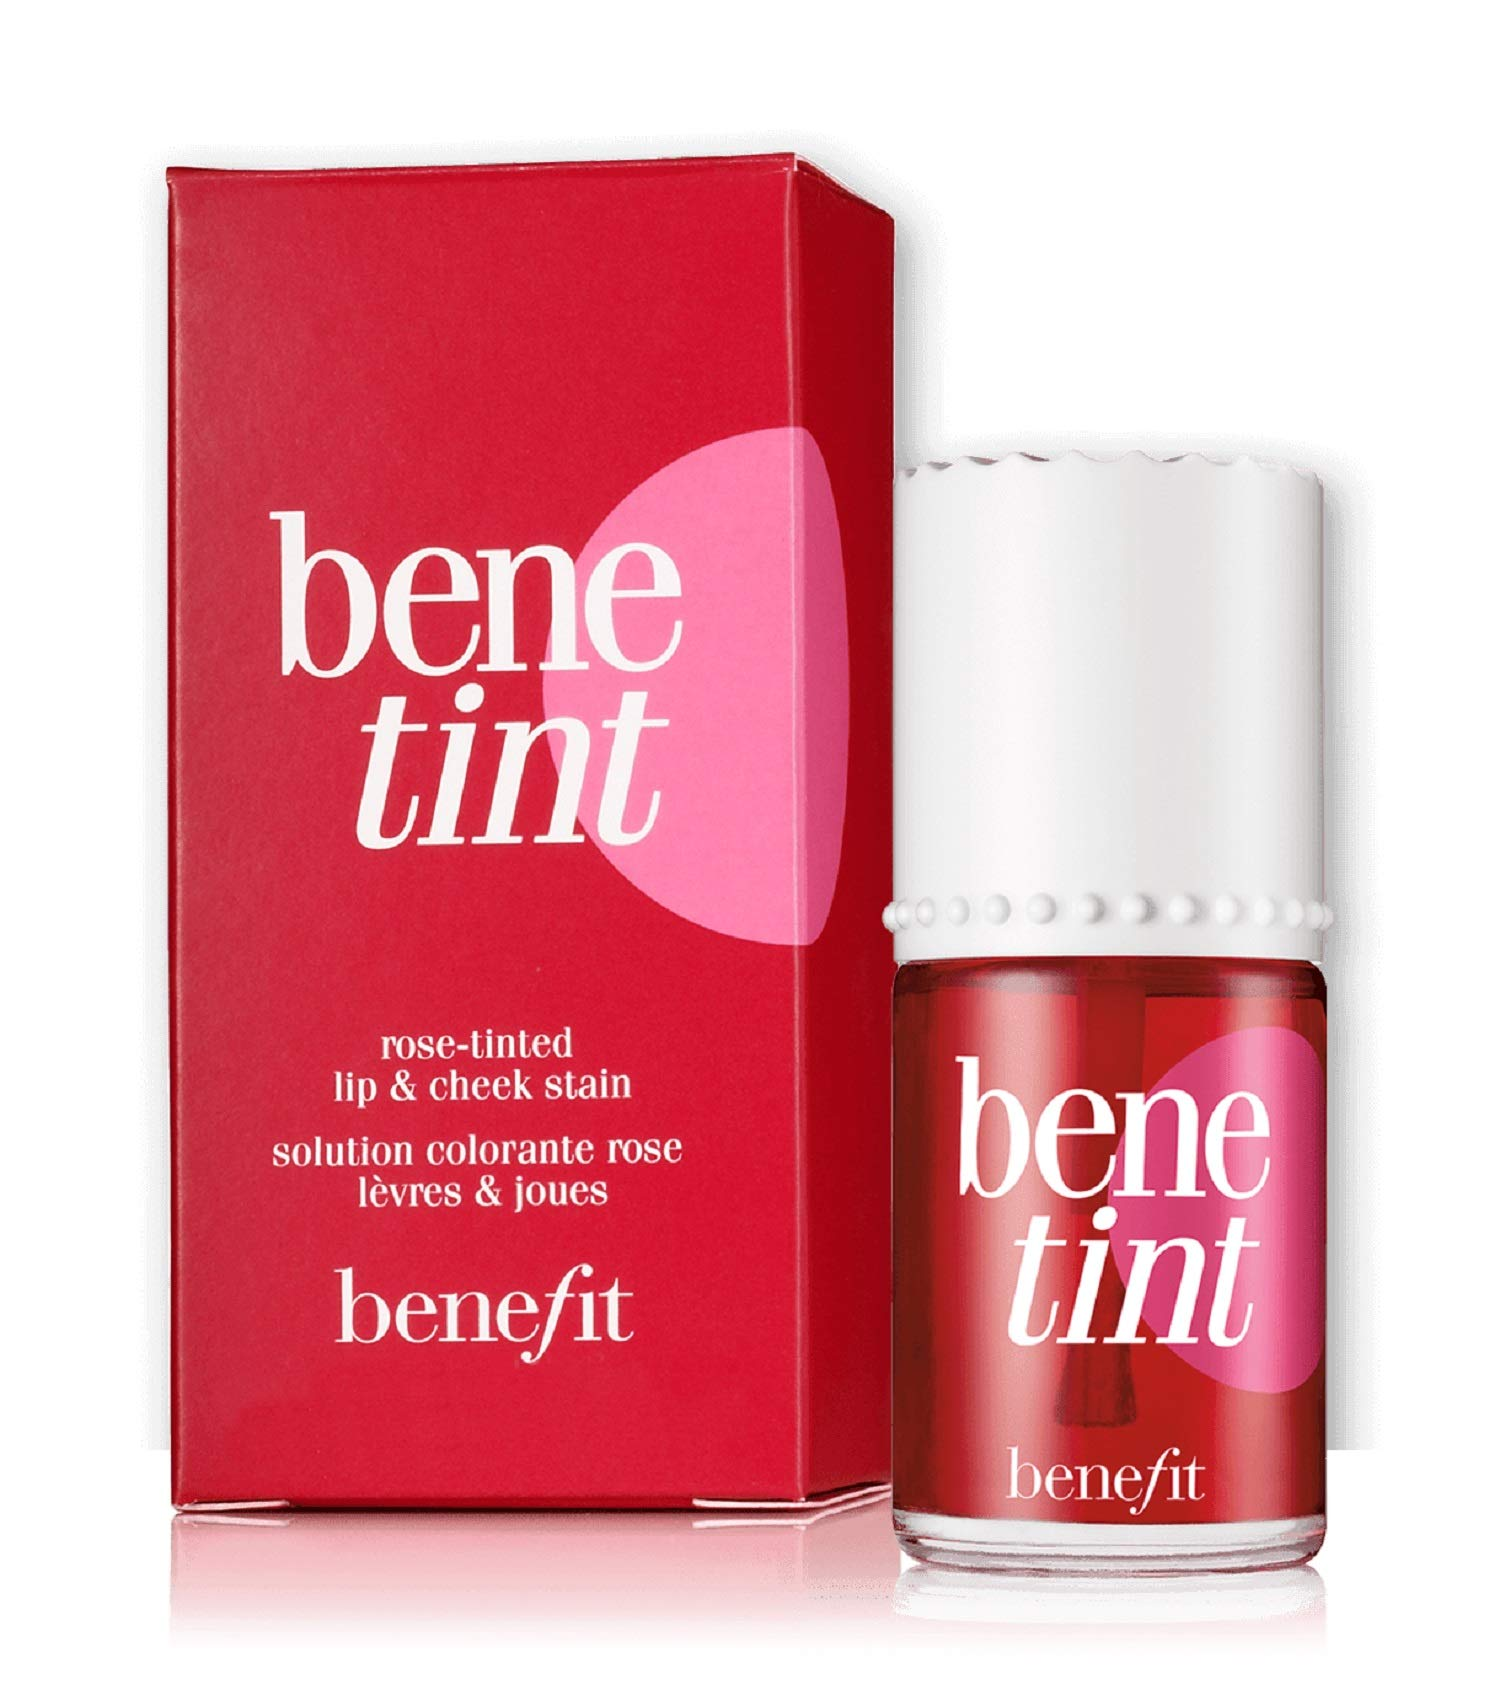 Benefit Cosmetics Benetint Rose Tinted Lip & Cheek Stain, 0.33 Ounce